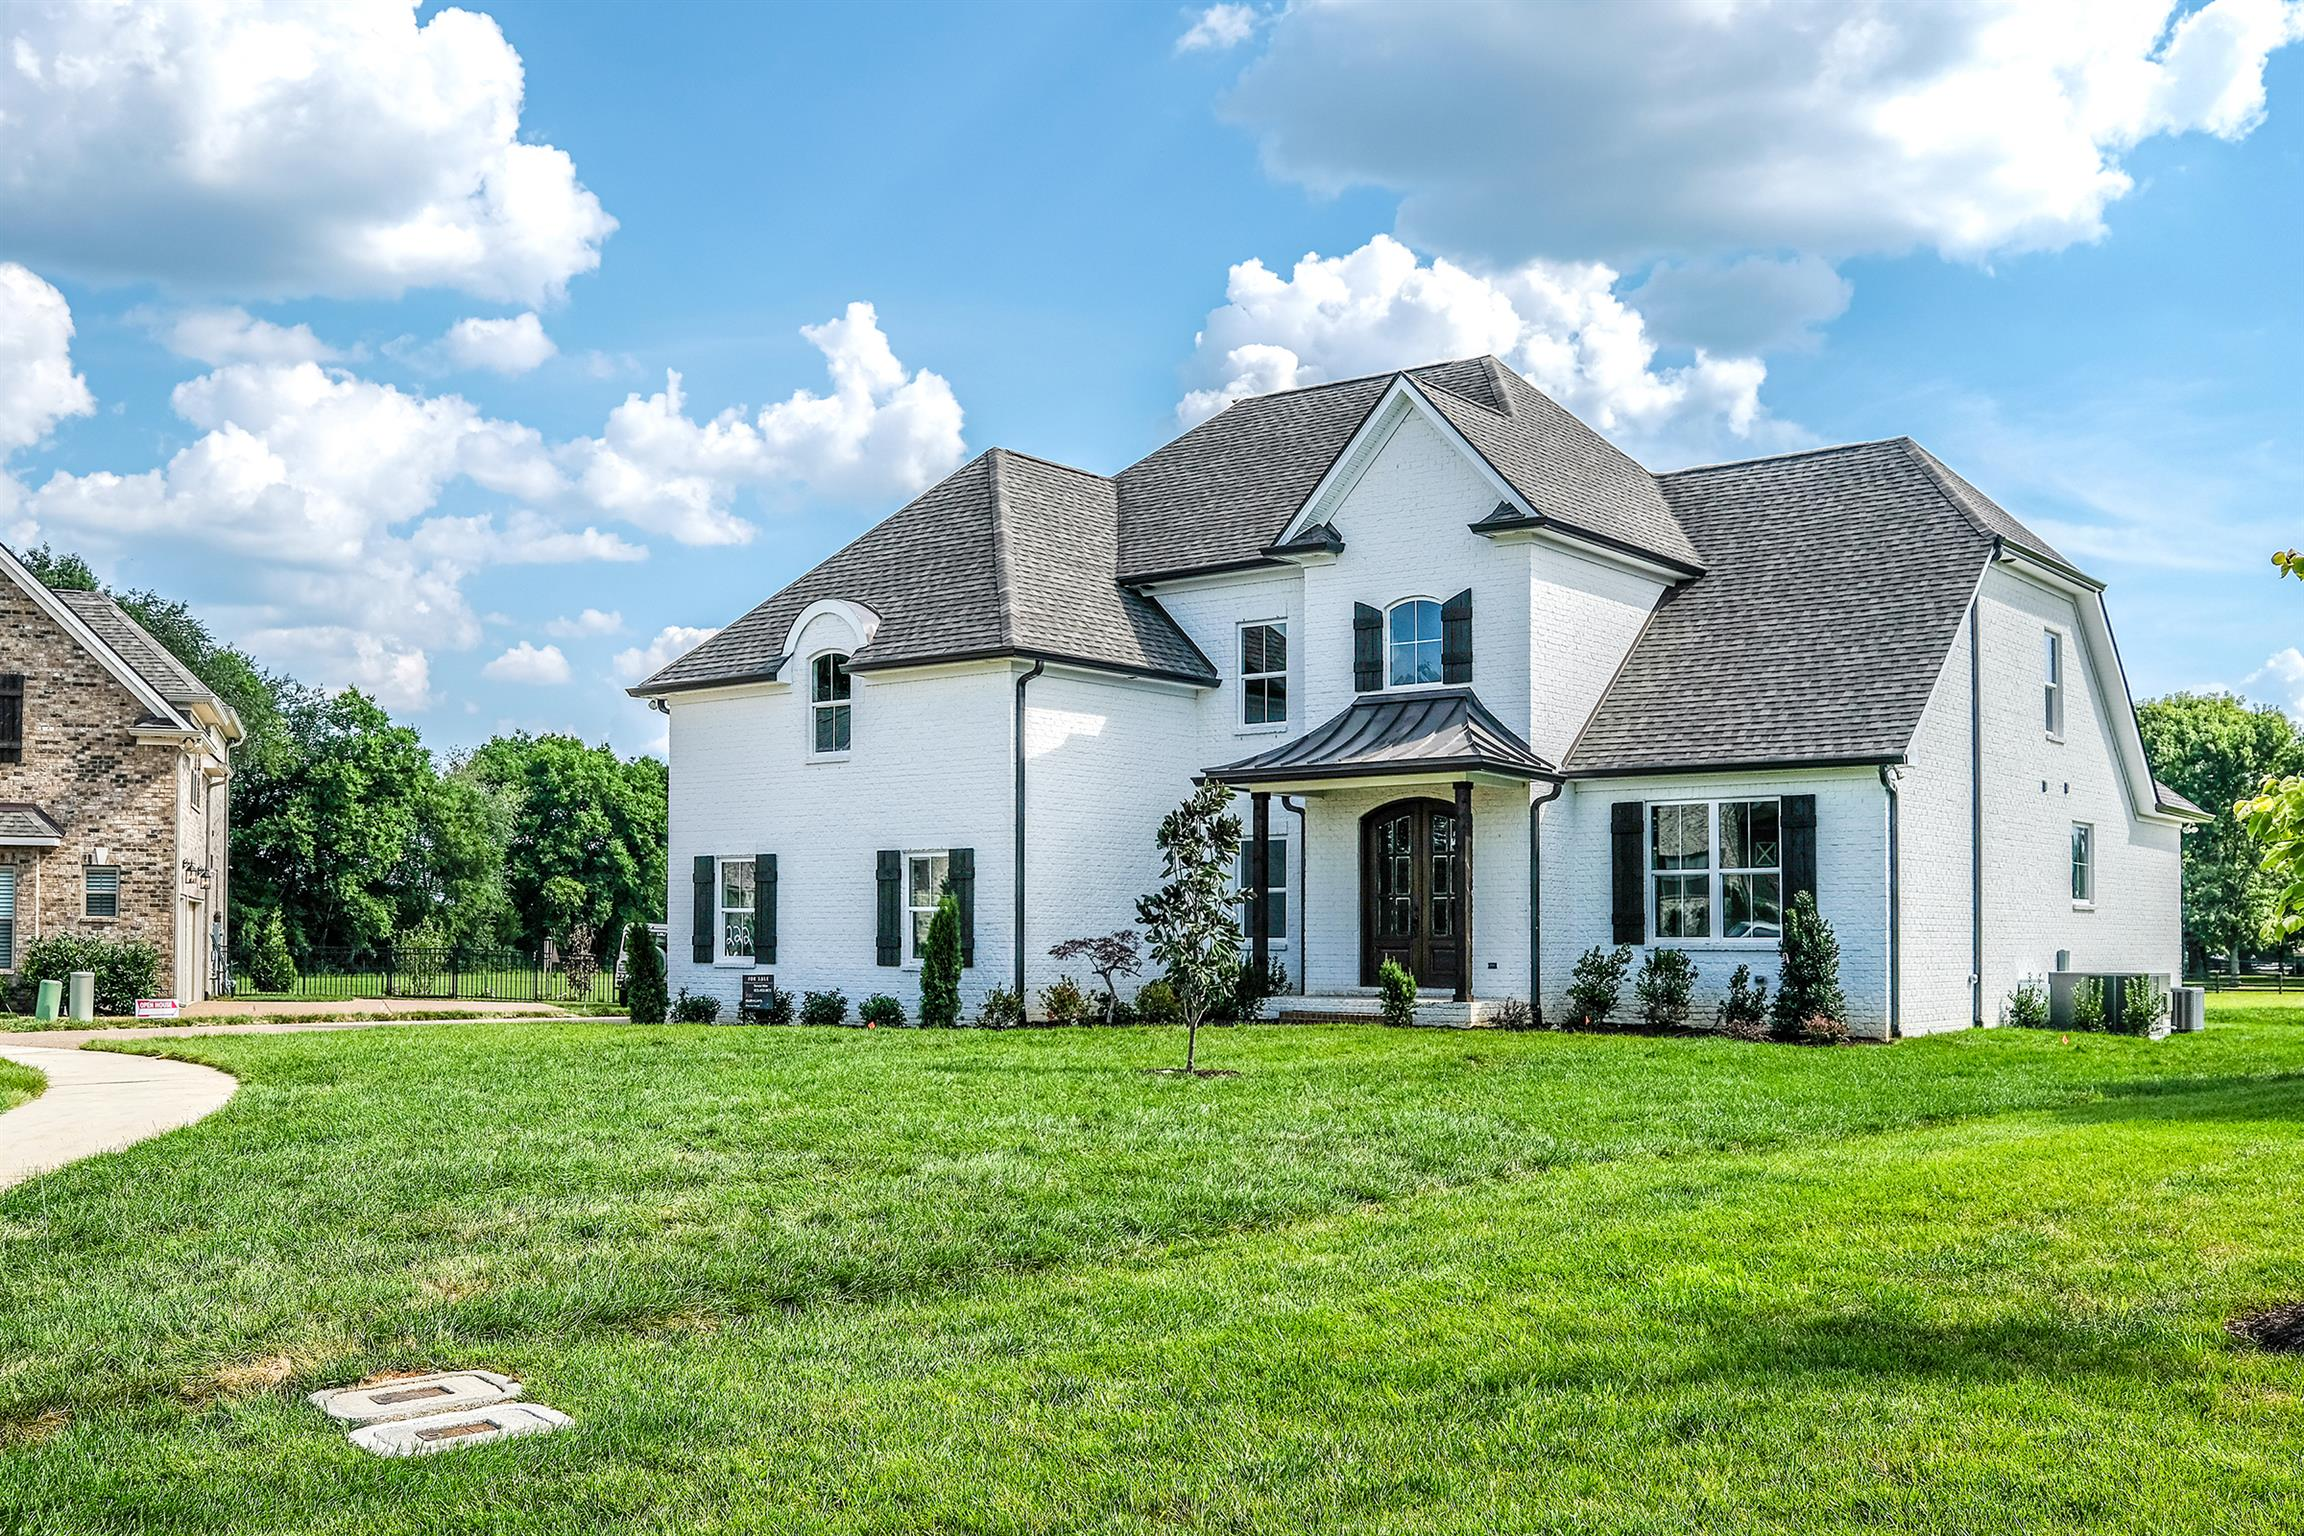 102 Cardigan Ct (Lot 222), Spring Hill, Tennessee